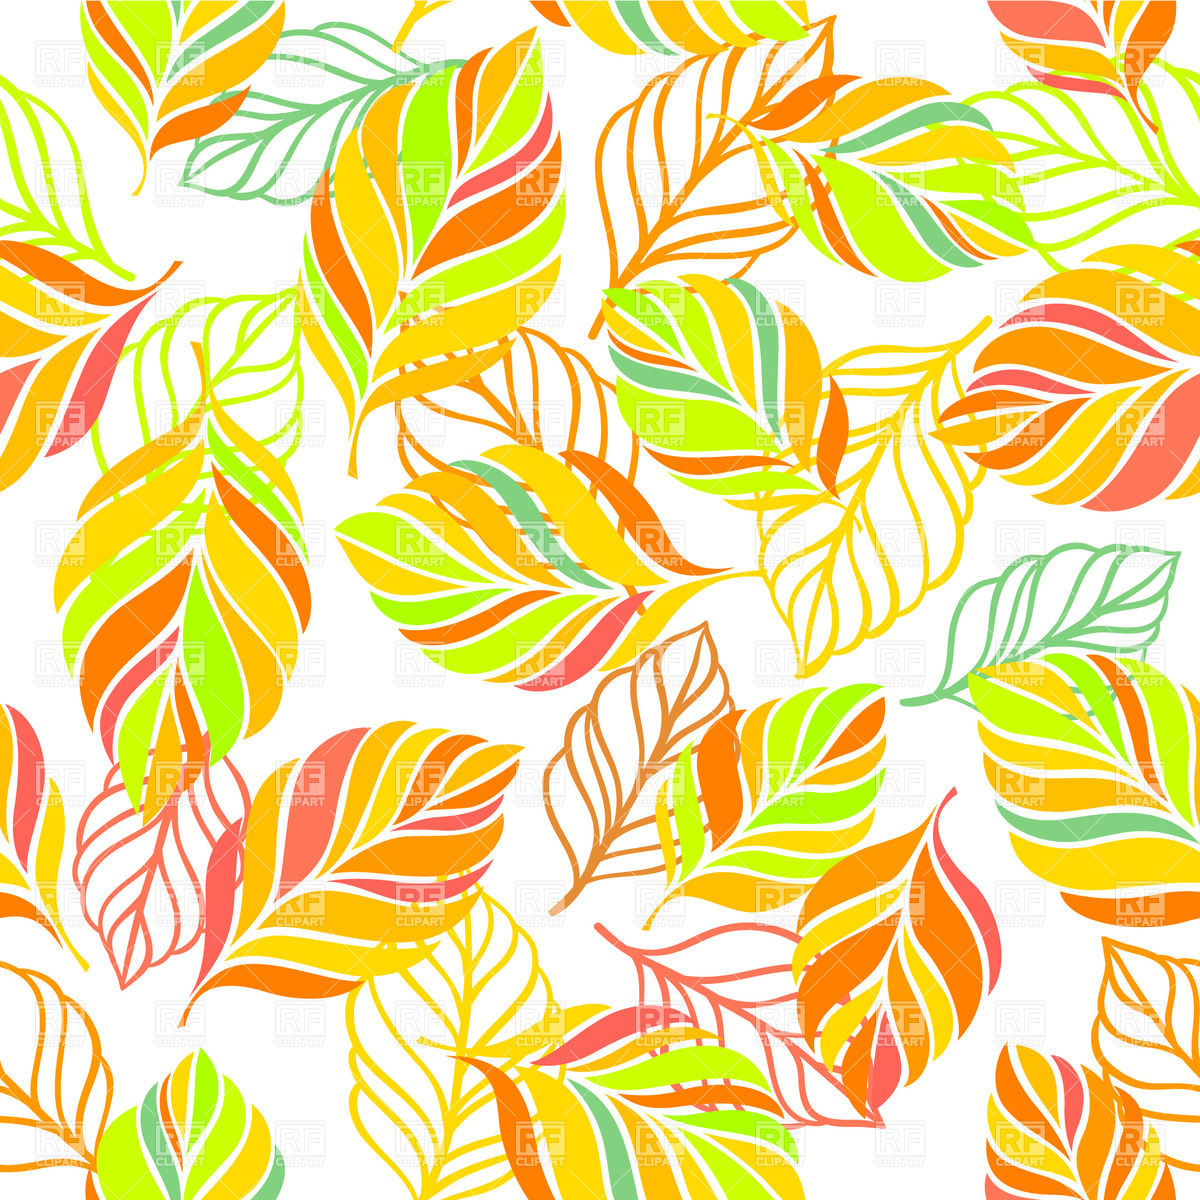 Wallpaper clipart free png transparent Colorful background with leaves - seamless autumn wallpaper Vector ... png transparent